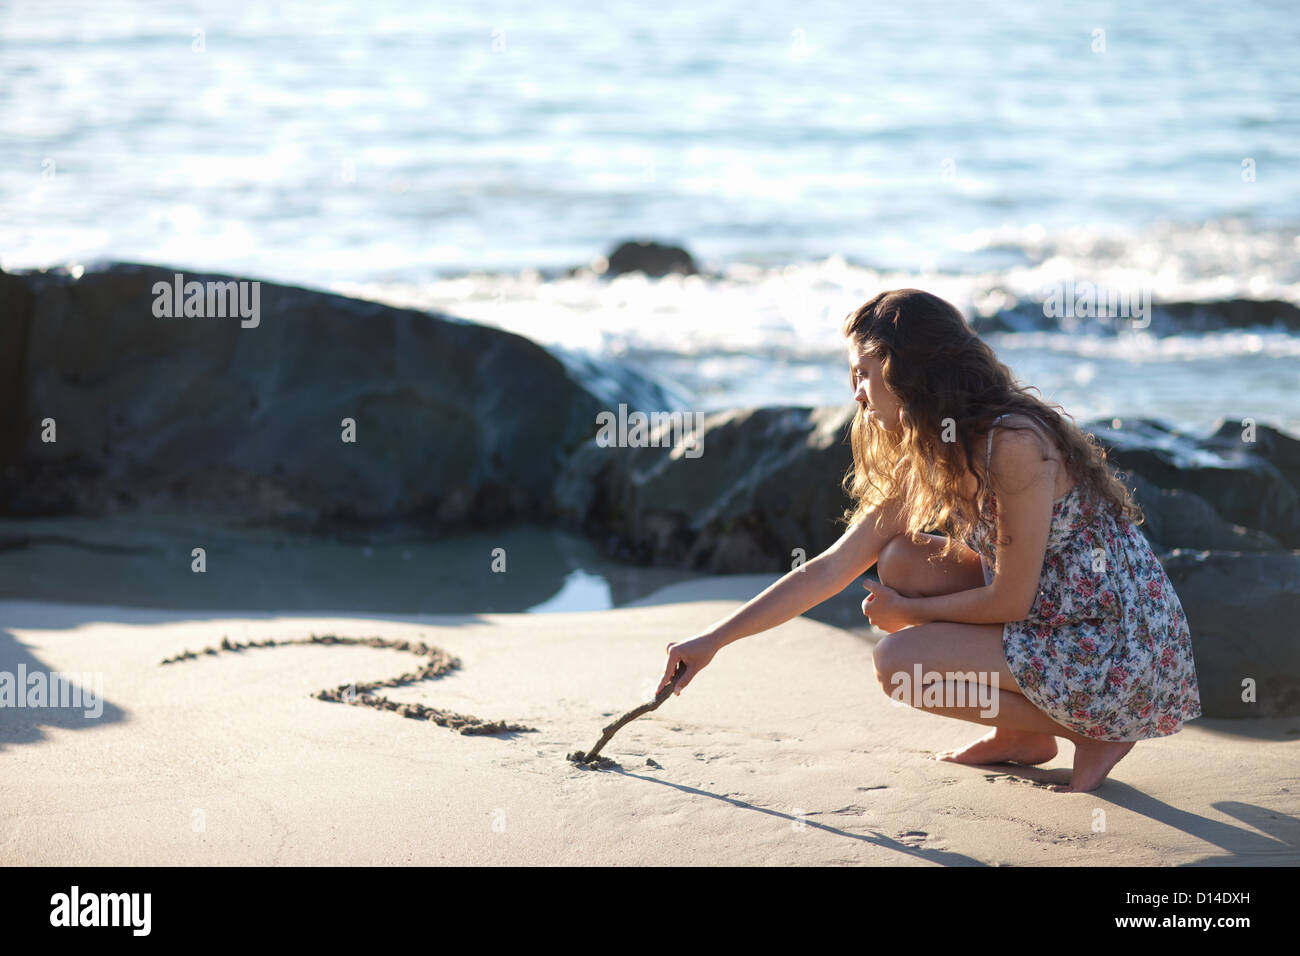 Woman drawing question mark in sand - Stock Image